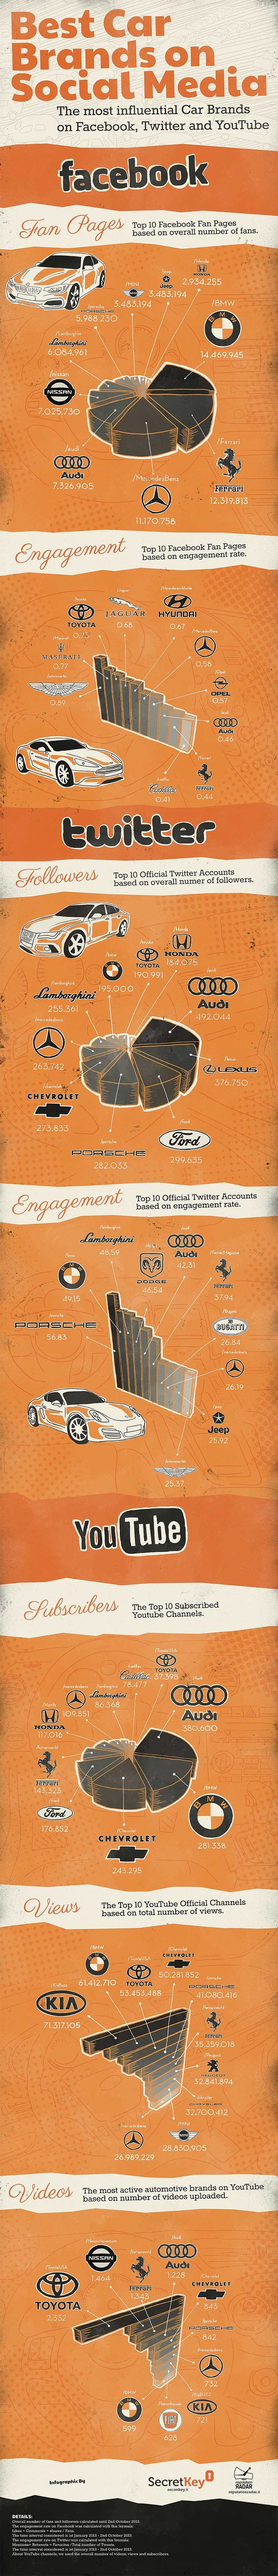 Facebook, Twitter, YouTube – The Top Car Brands On Social Media [INFOGRAPHIC]